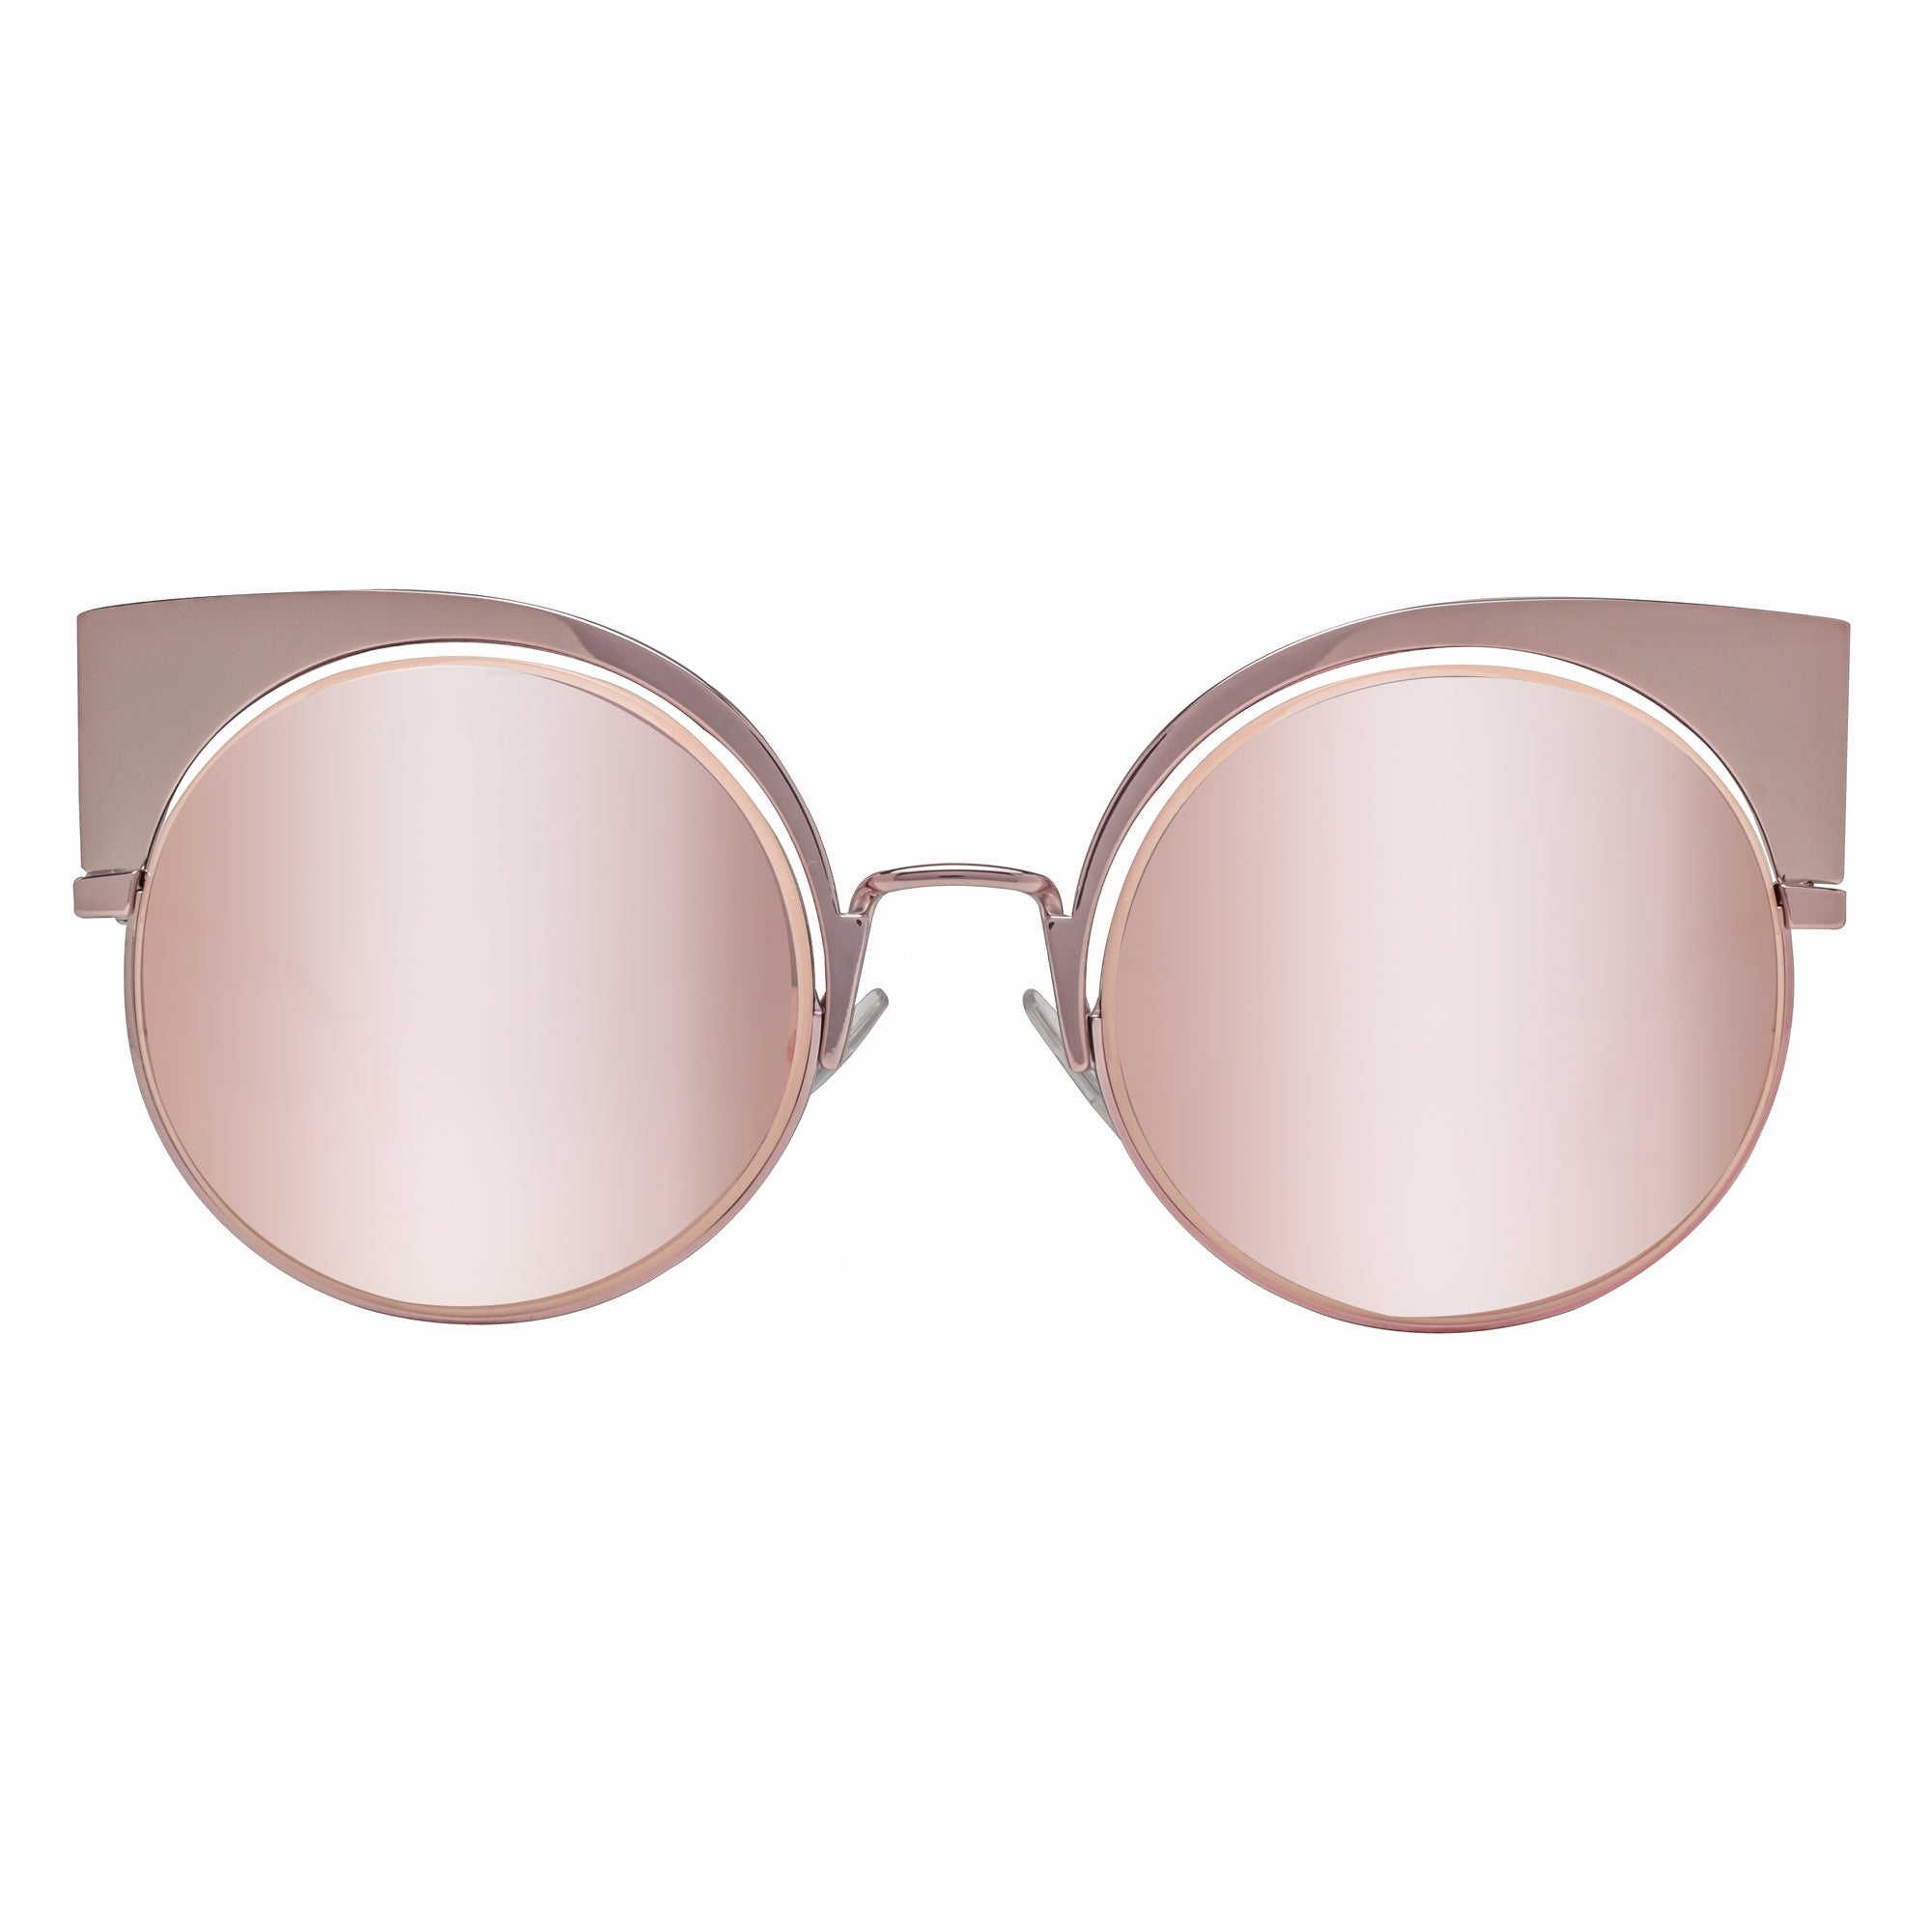 5cd2920c3350f Shop Fendi FF 0177 S Z5D 0J Rose Pink Grey Mirror Women s Cat Eye Round  Sunglasses - Rose Pink - 53mm-22mm-135mm - Free Shipping Today - Overstock  - ...